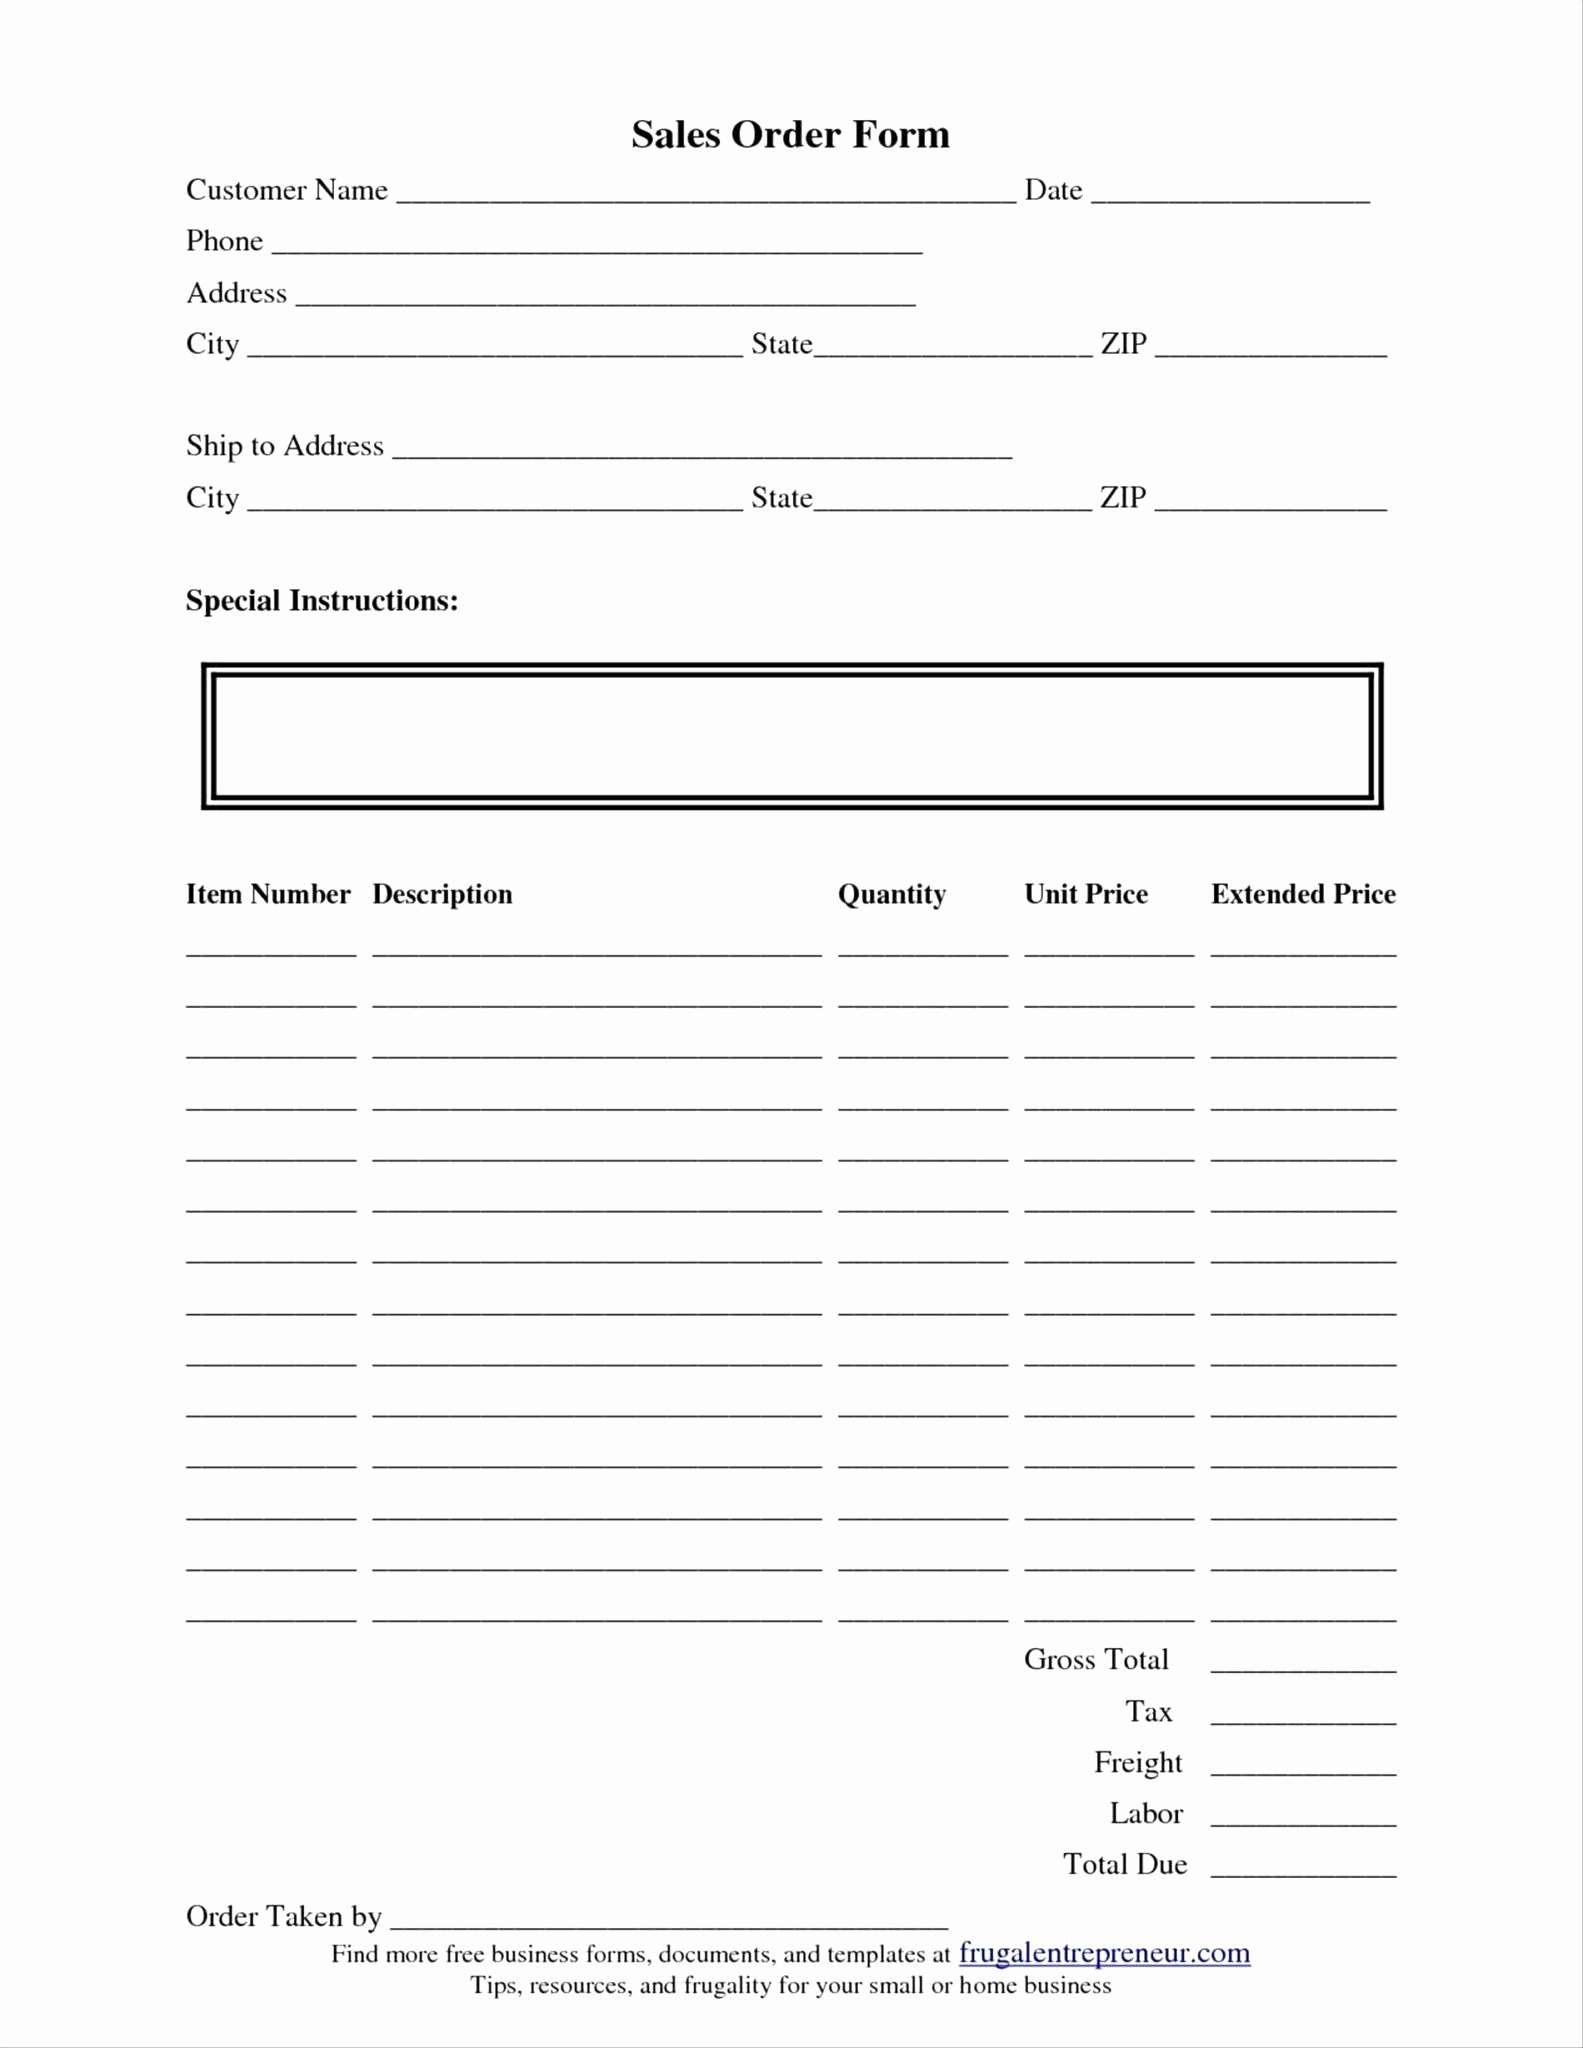 Requisition Tracking Spreadsheet Pertaining To Requisition Tracking Spreadsheet  Readleaf